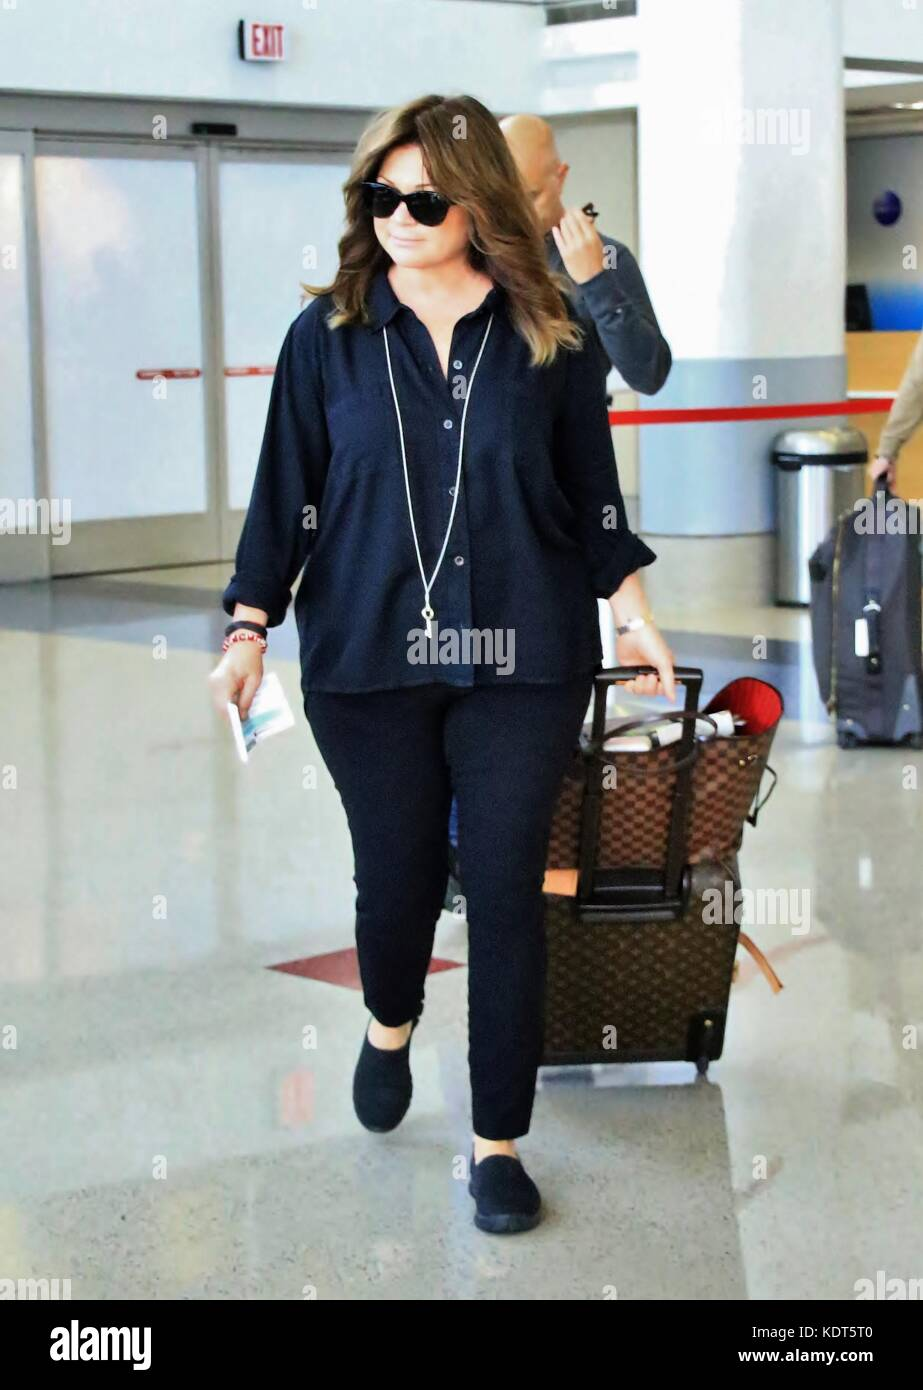 Valerie Bertinelli Departs From The Airport With Her Husband Tom Stock Photo Alamy